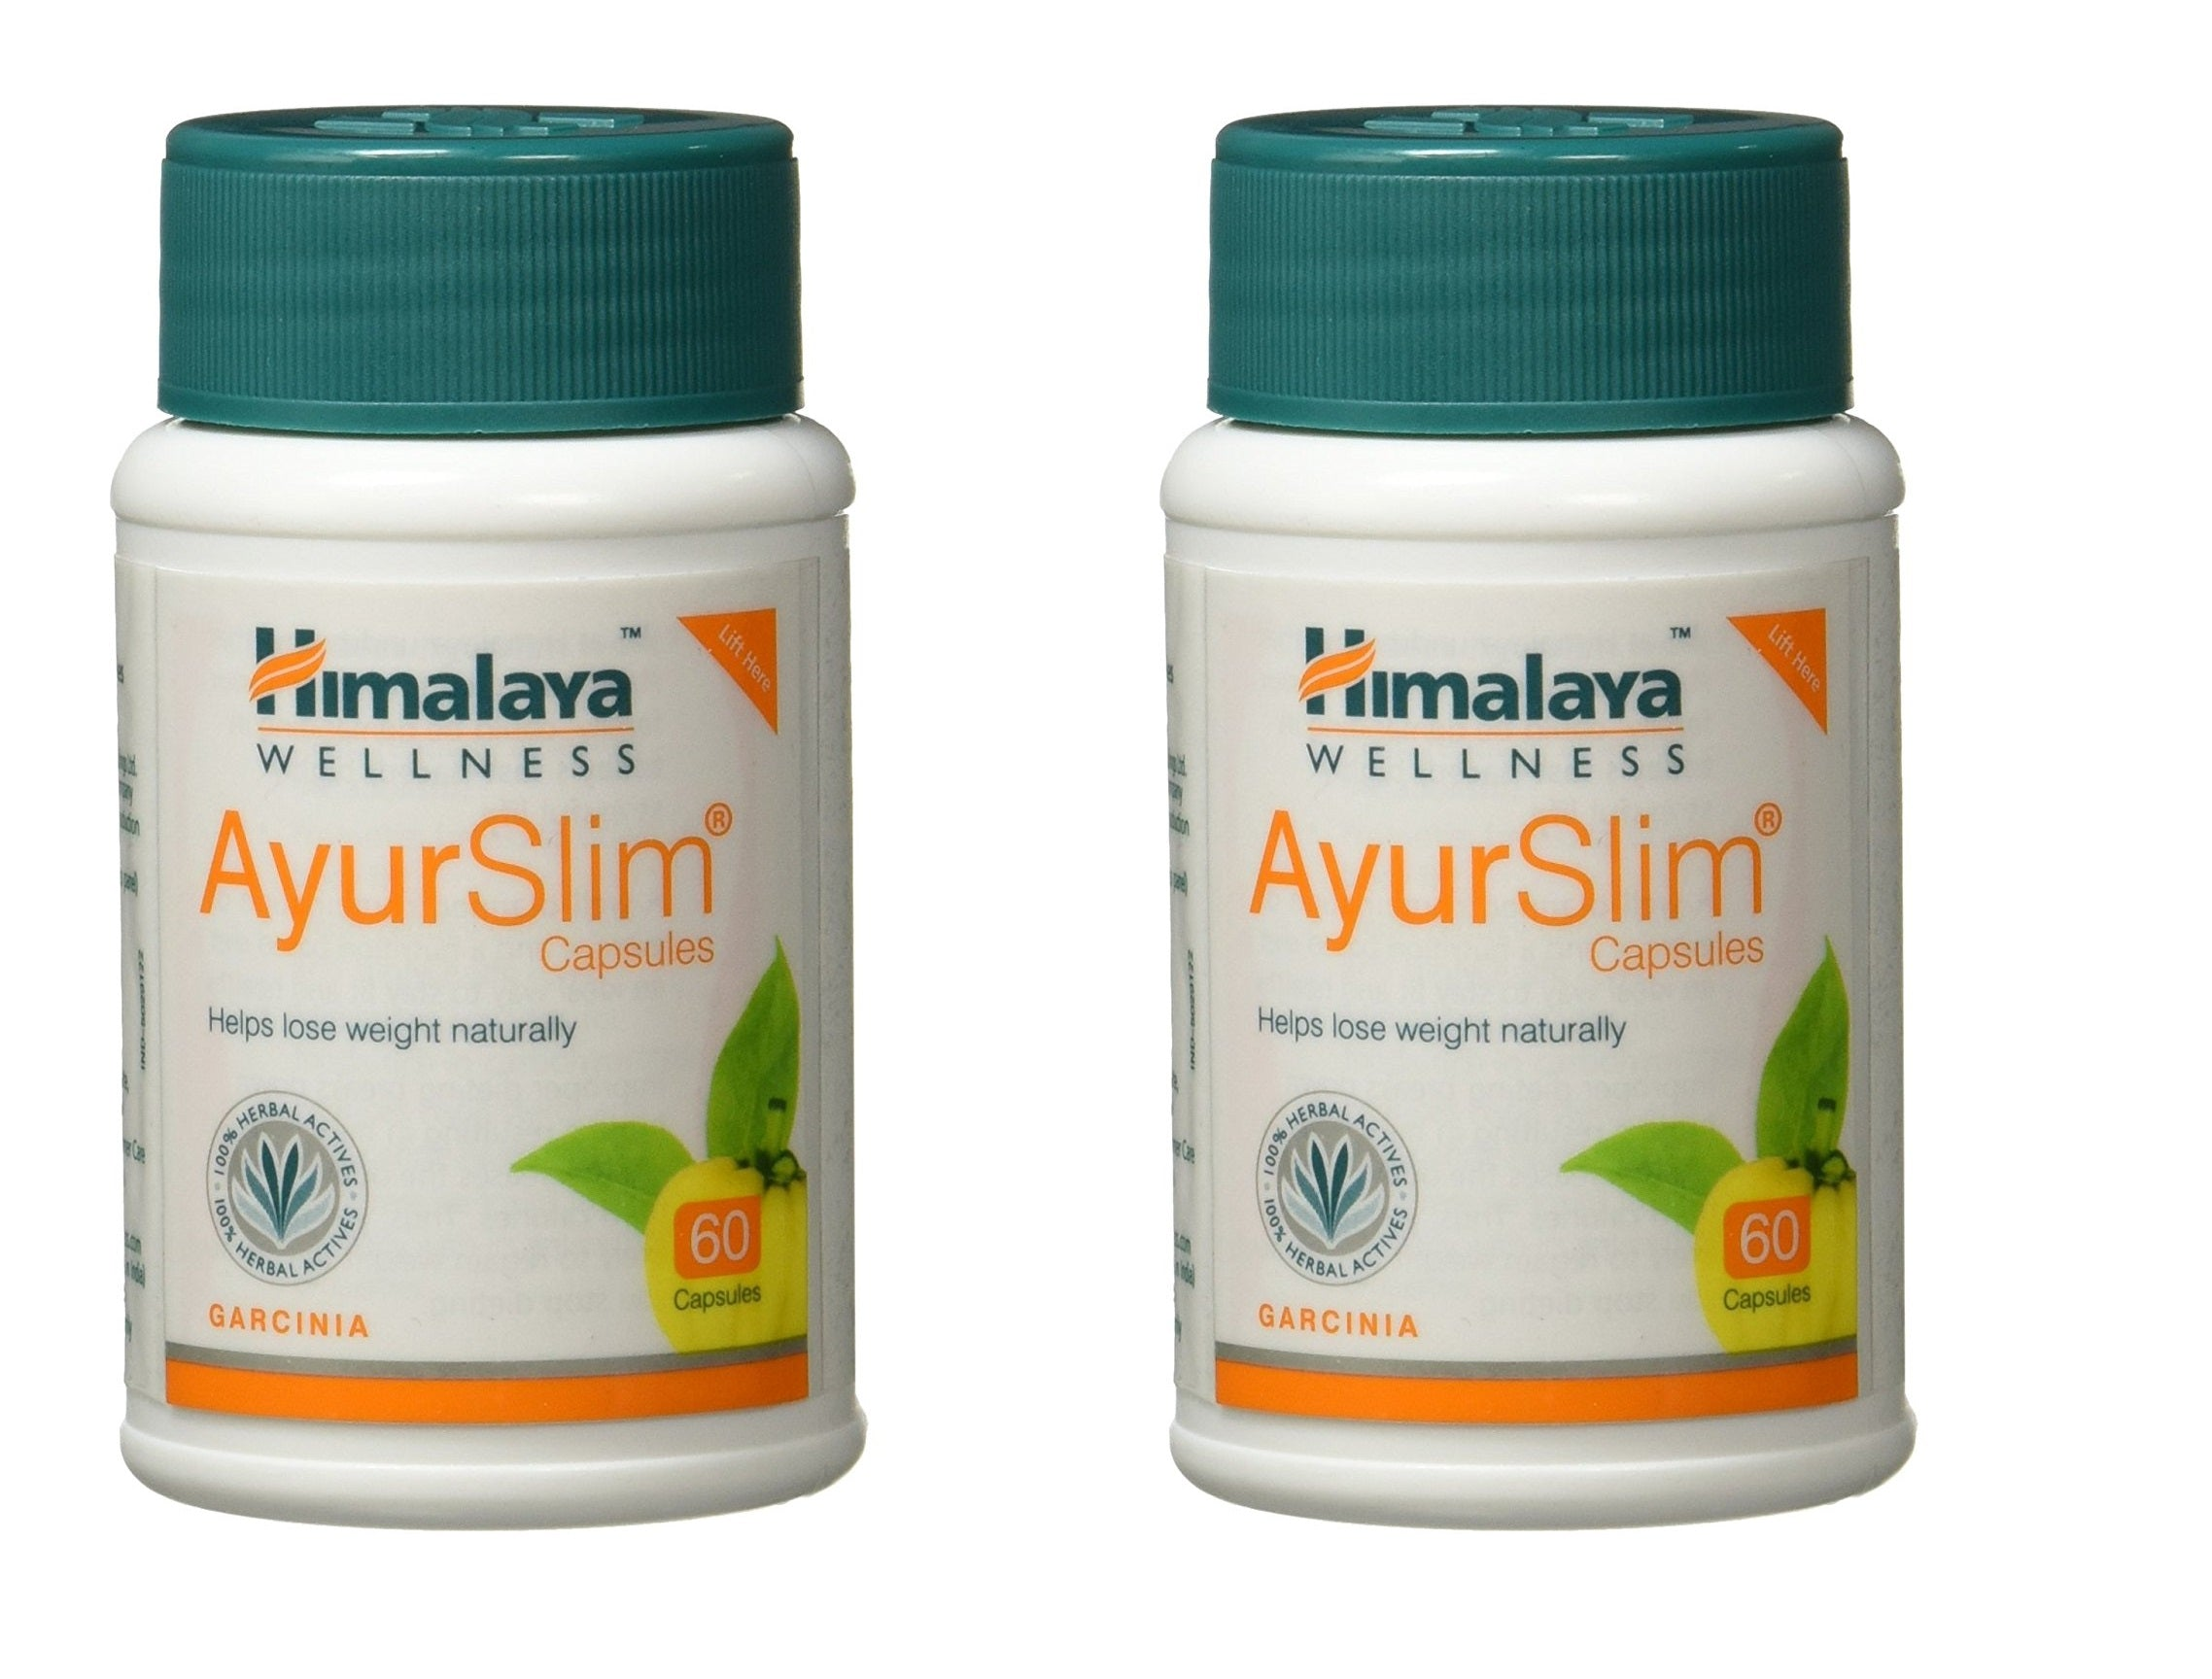 Best Seller Tagged Ayurslim A1 Quality Store